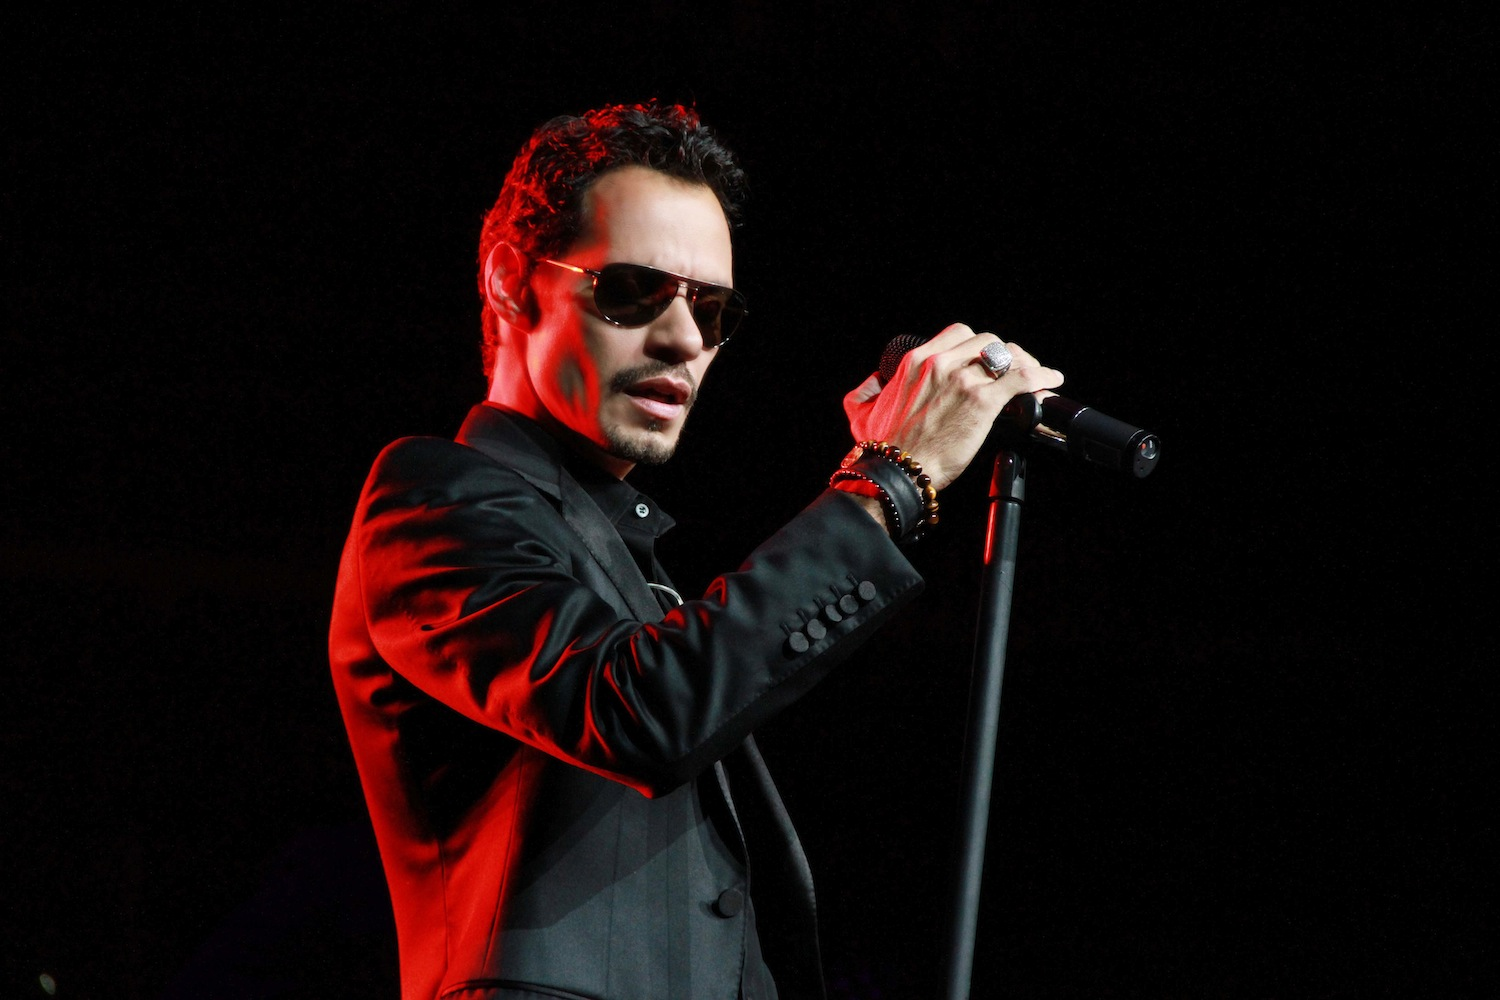 marc anthony performing 3.0